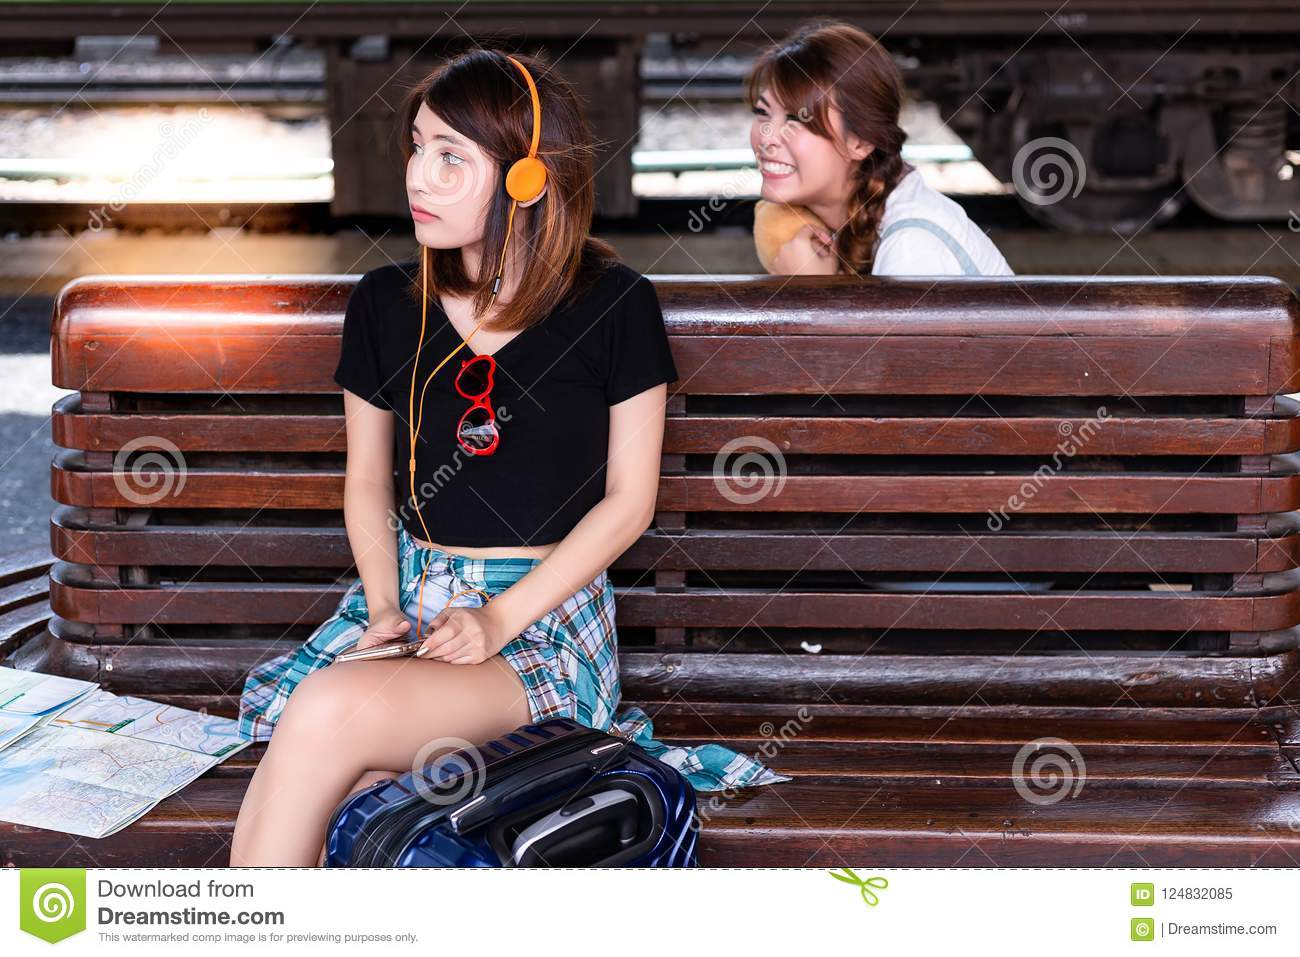 Beautiful woman is waiting her friend on wooden bench and listen